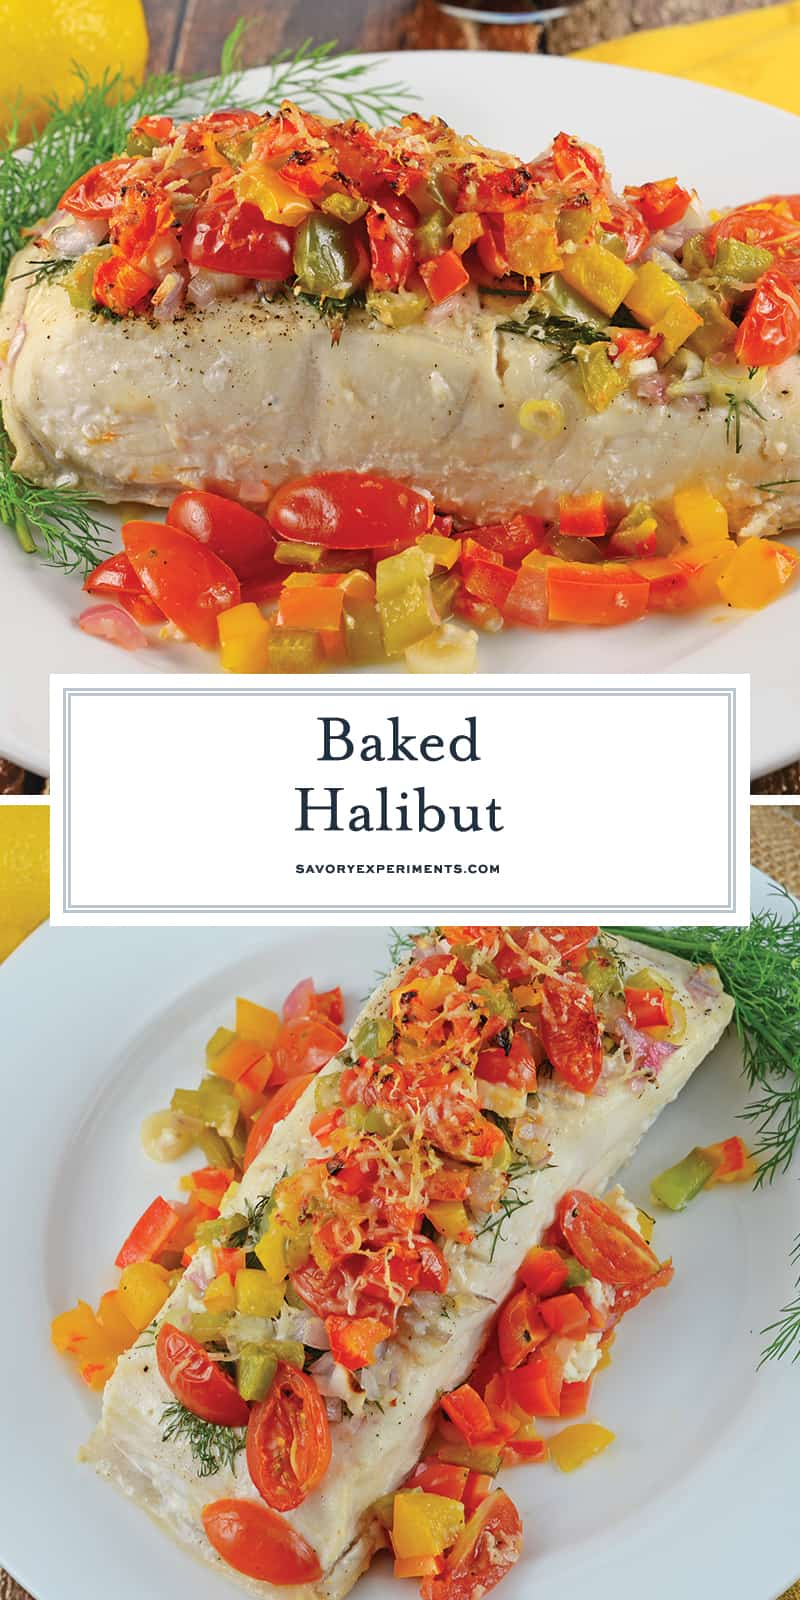 Healthy Baked Halibut is an easy, healthy and colorful dish. Perfect for an easy weeknight meal or sophsiticated enough for a holiday. #bakedhalibutrecipes #healthybakedhalibut www.savoryexperiments.com